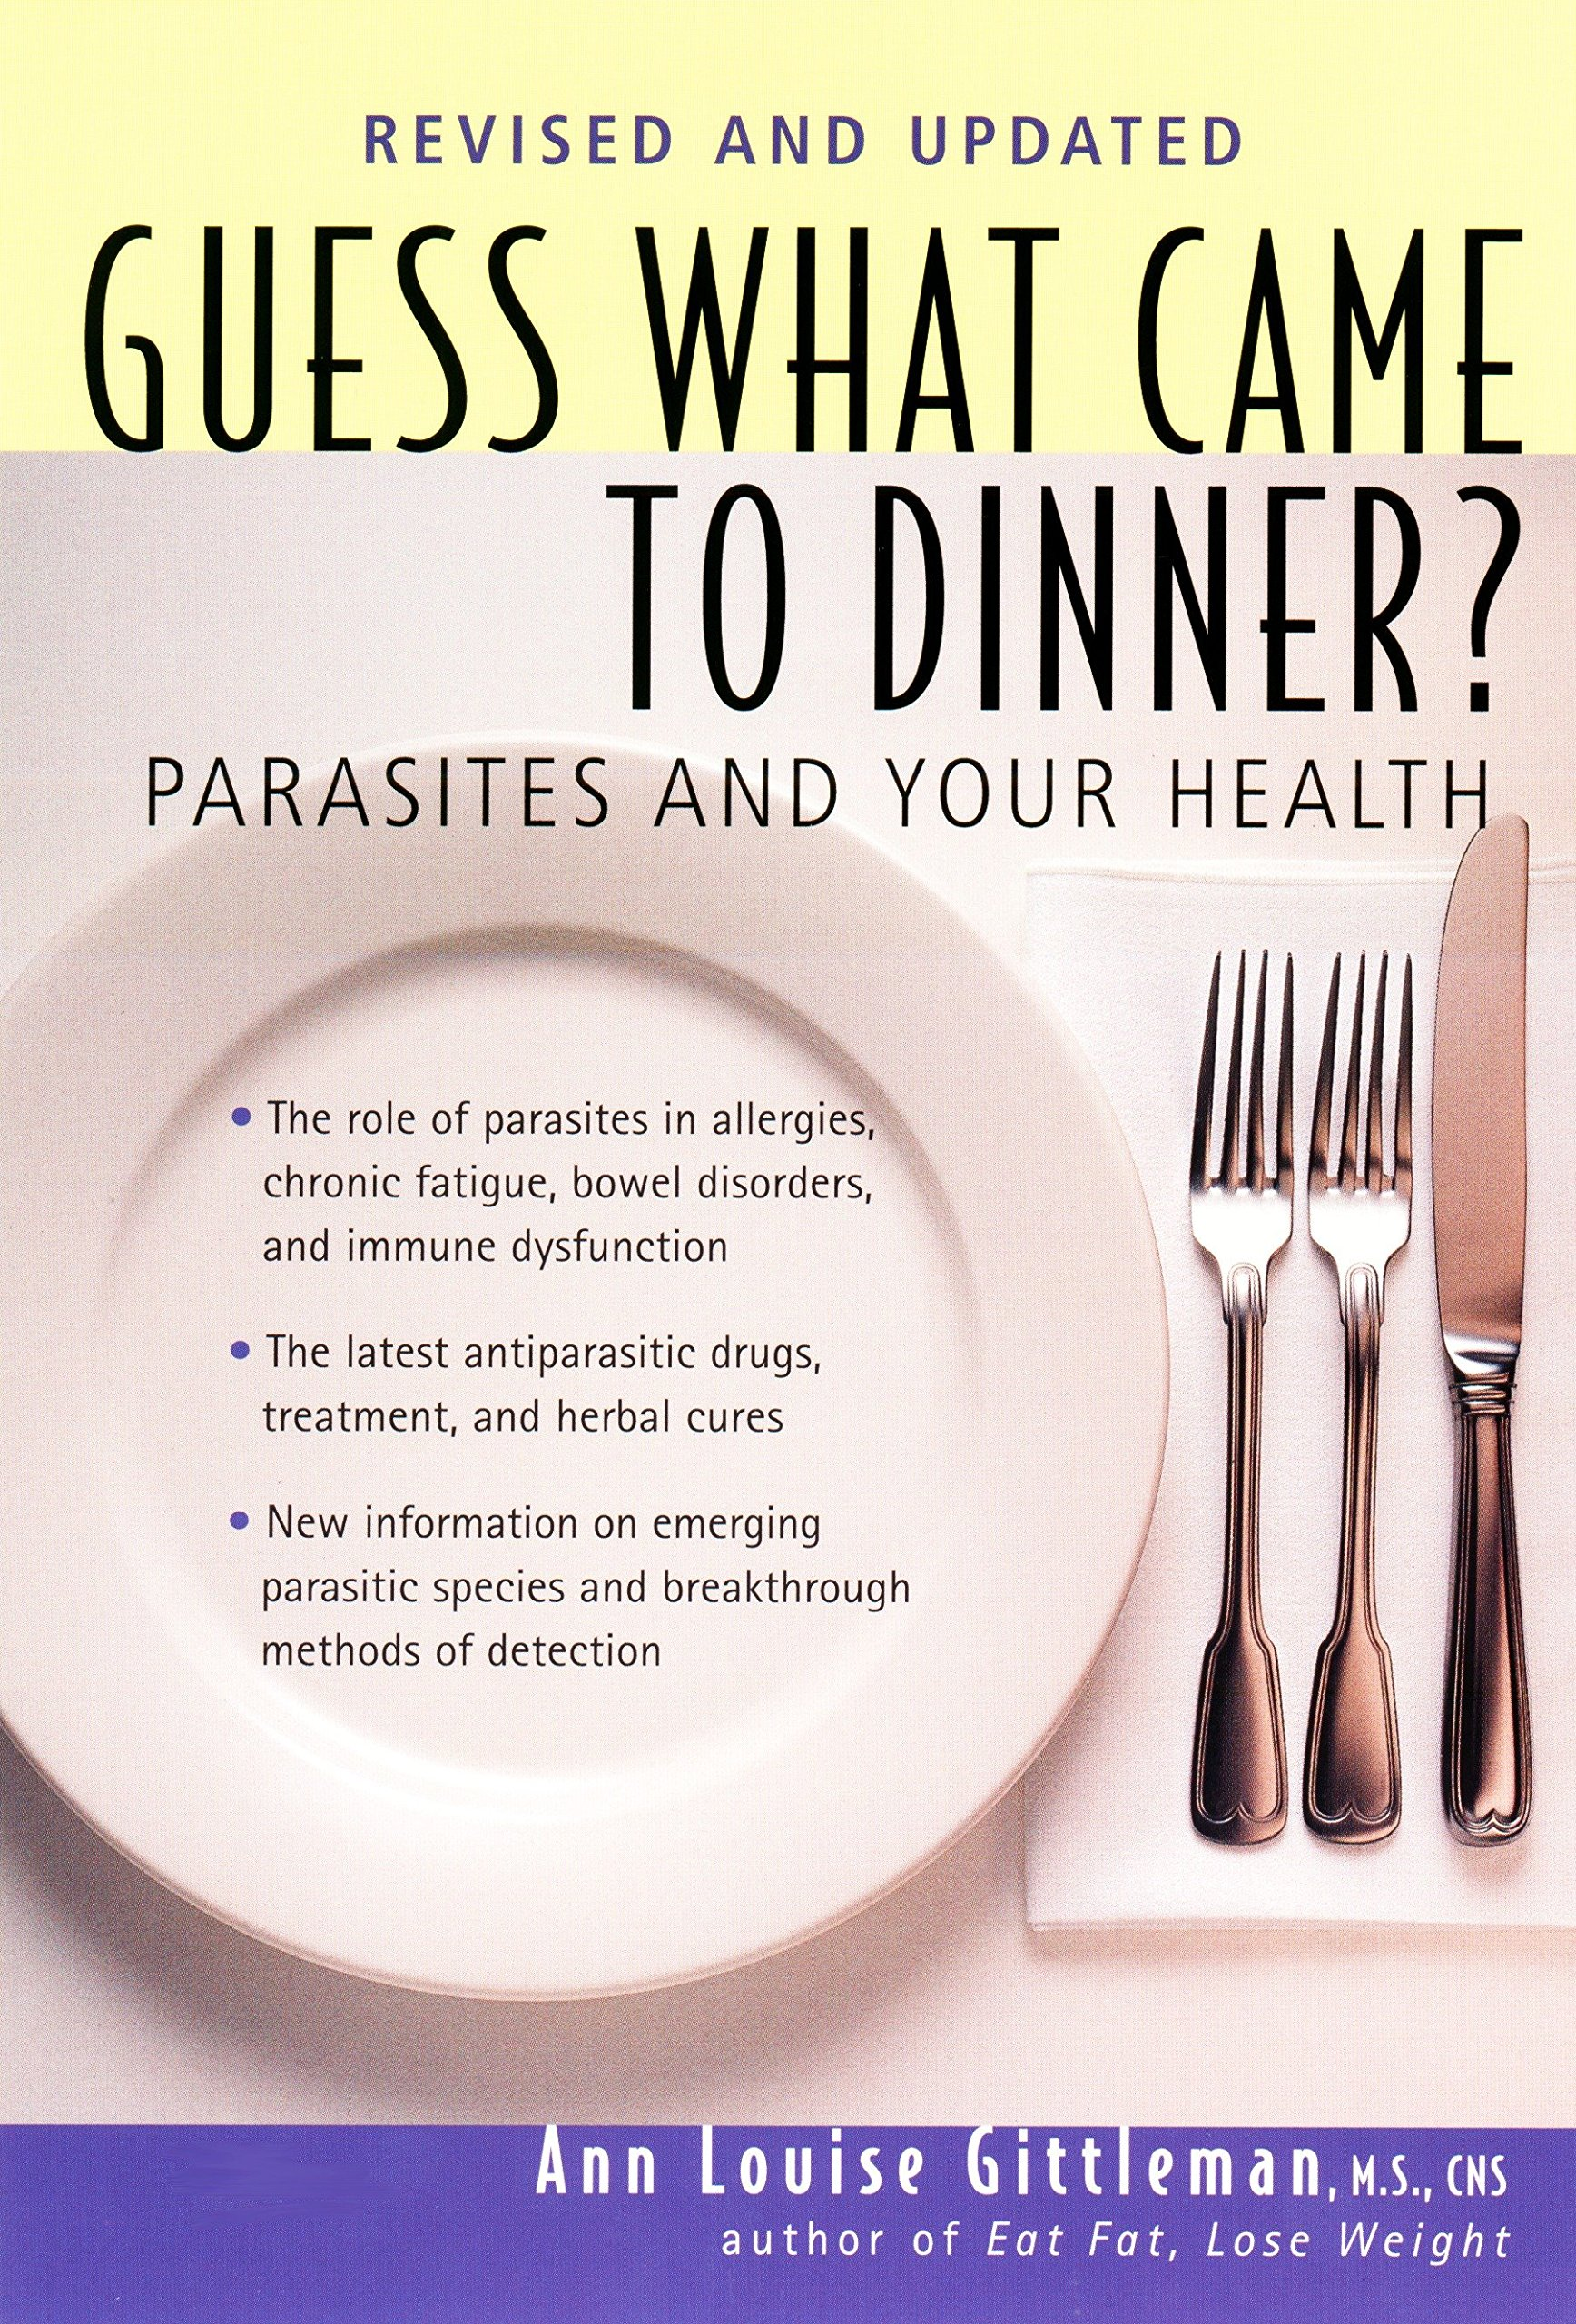 Guess What Came to Dinner?: Parasites and Your Health Paperback – July 9, 2001 Avery 1583330968 Health Care Issues Parasitic diseases